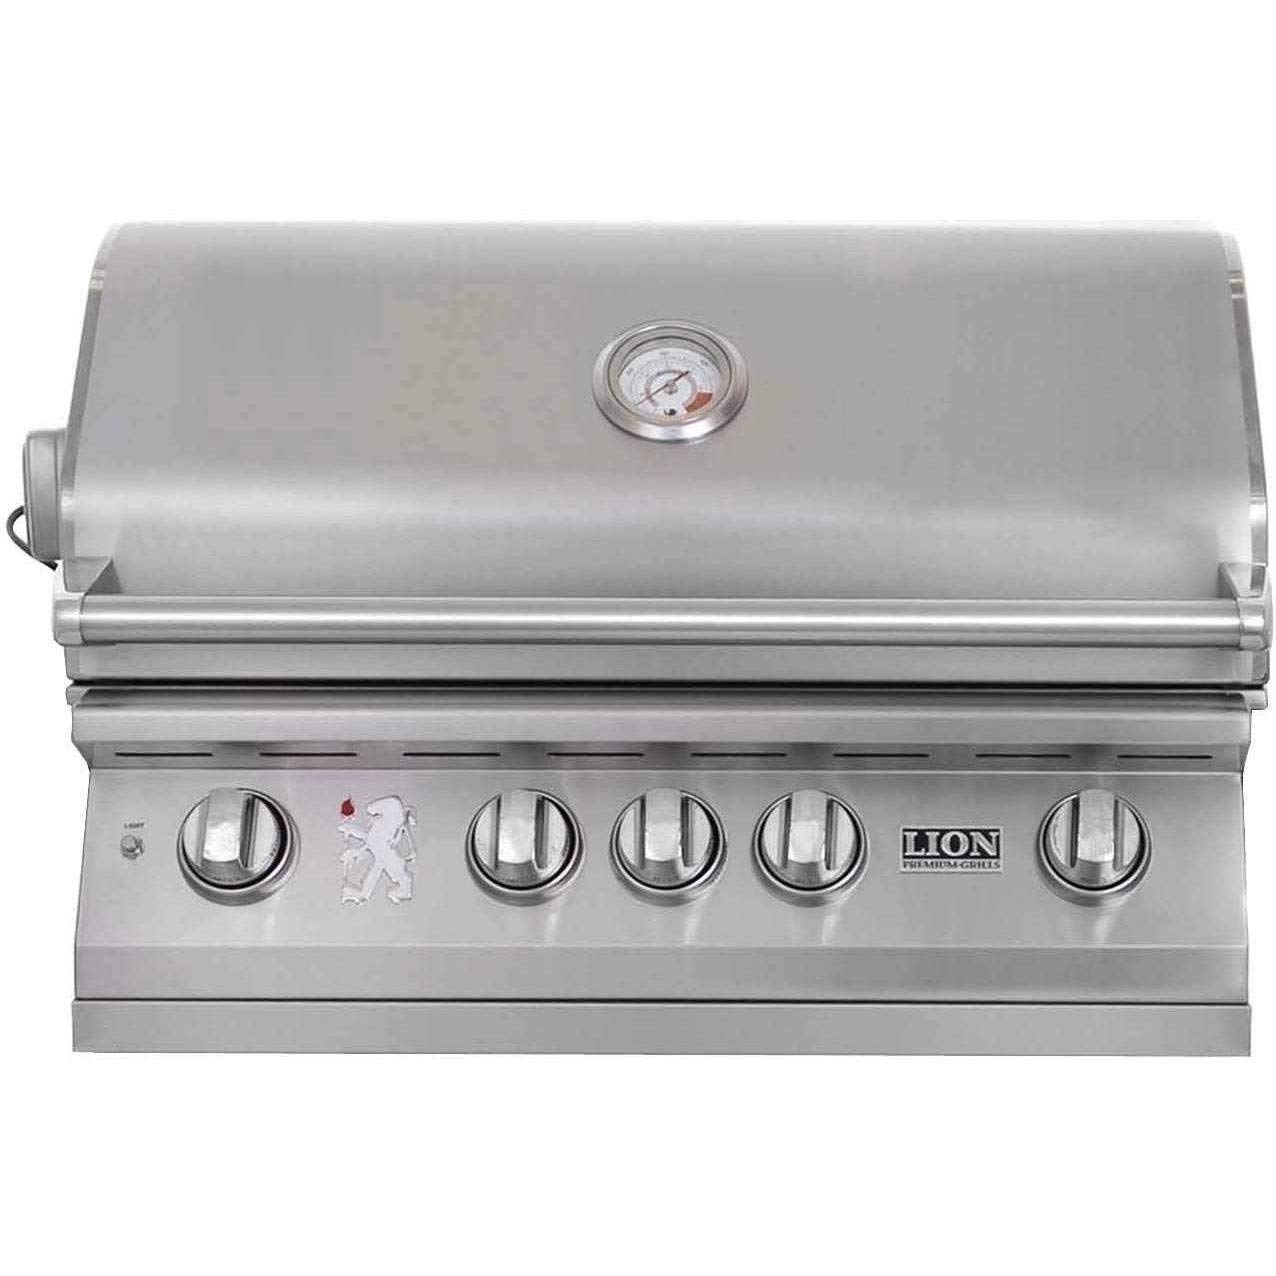 "Lion Premium Grills L75623 32"" Natural Gas Grill"